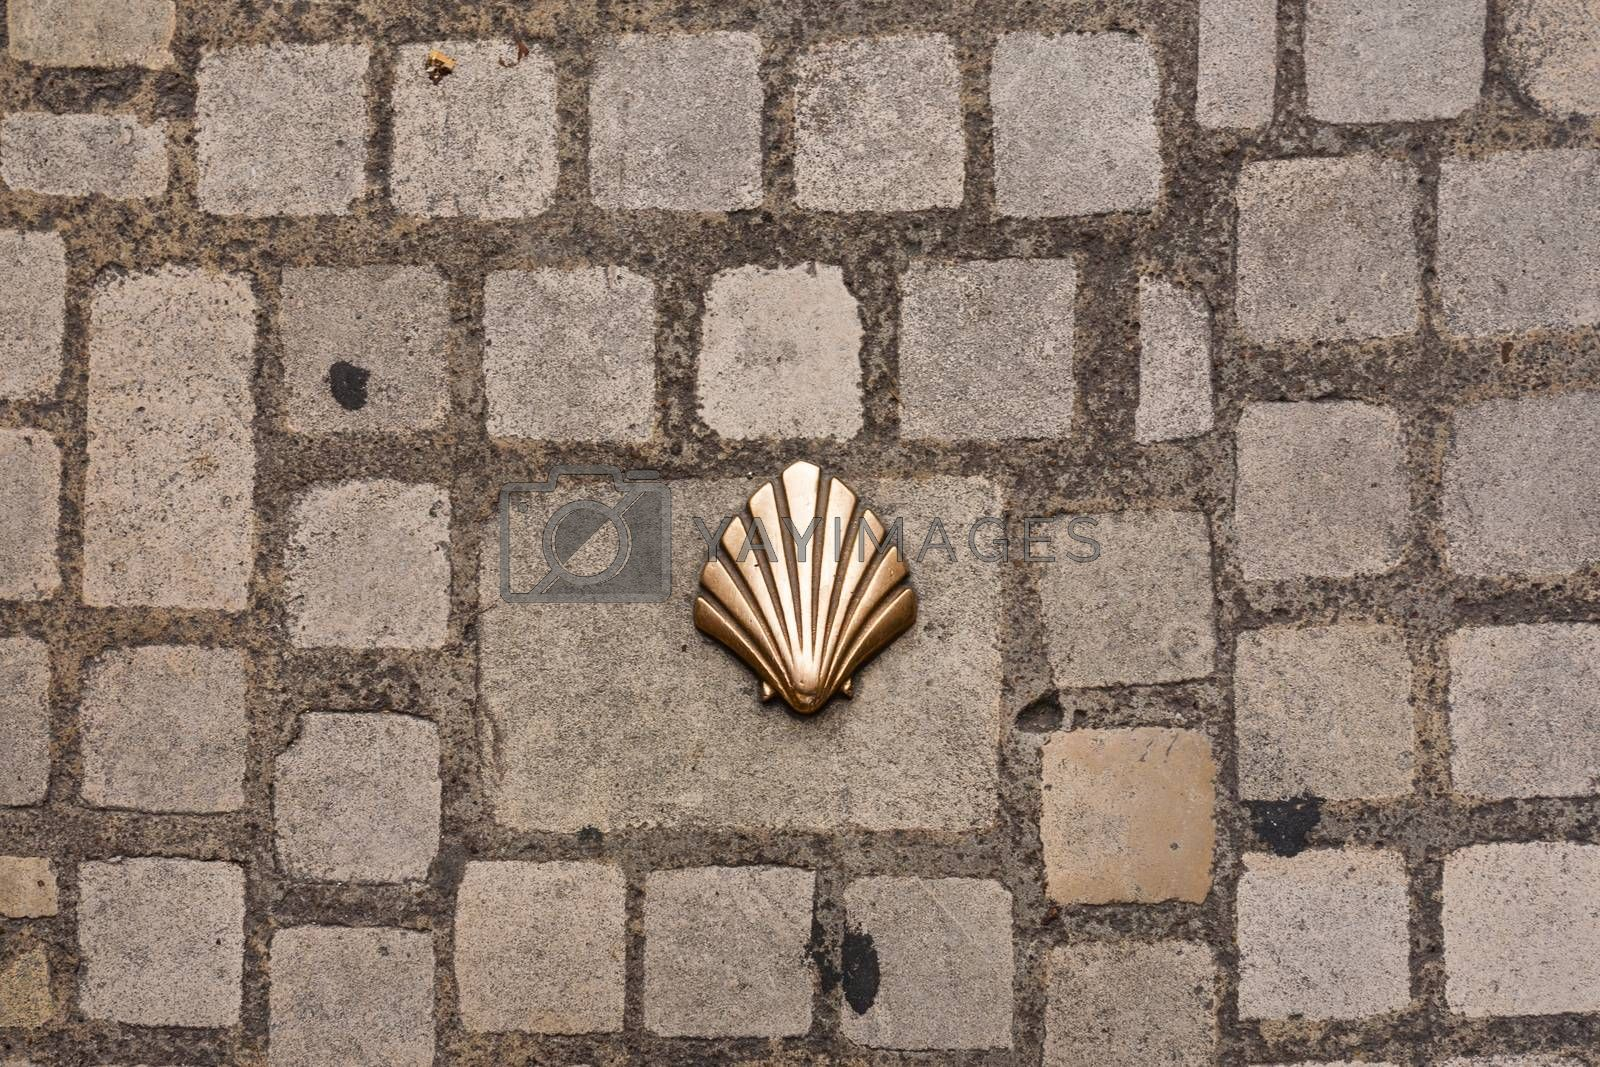 saint james way shell symbol on the street surface in Perigueux France